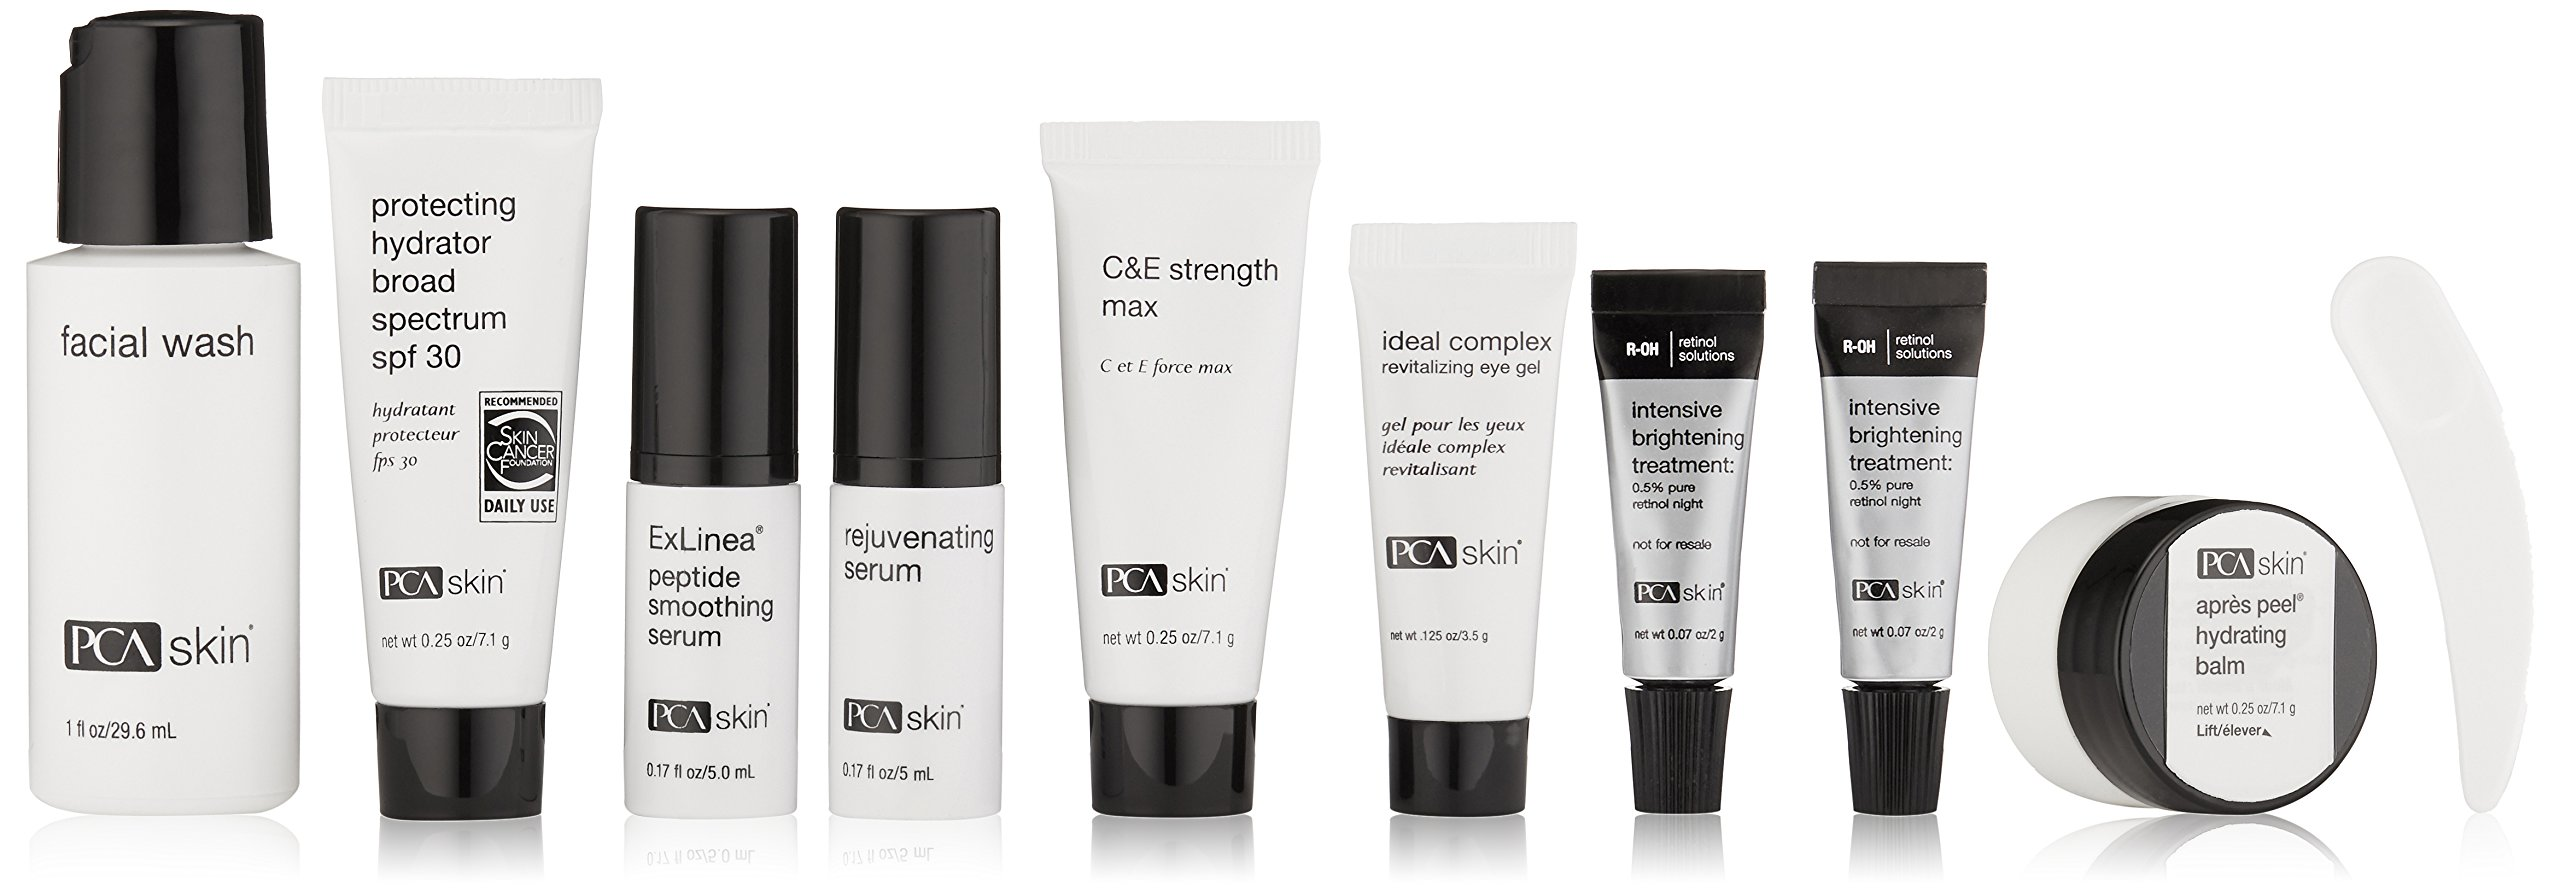 PCA SKIN The Age Control Oily Solution